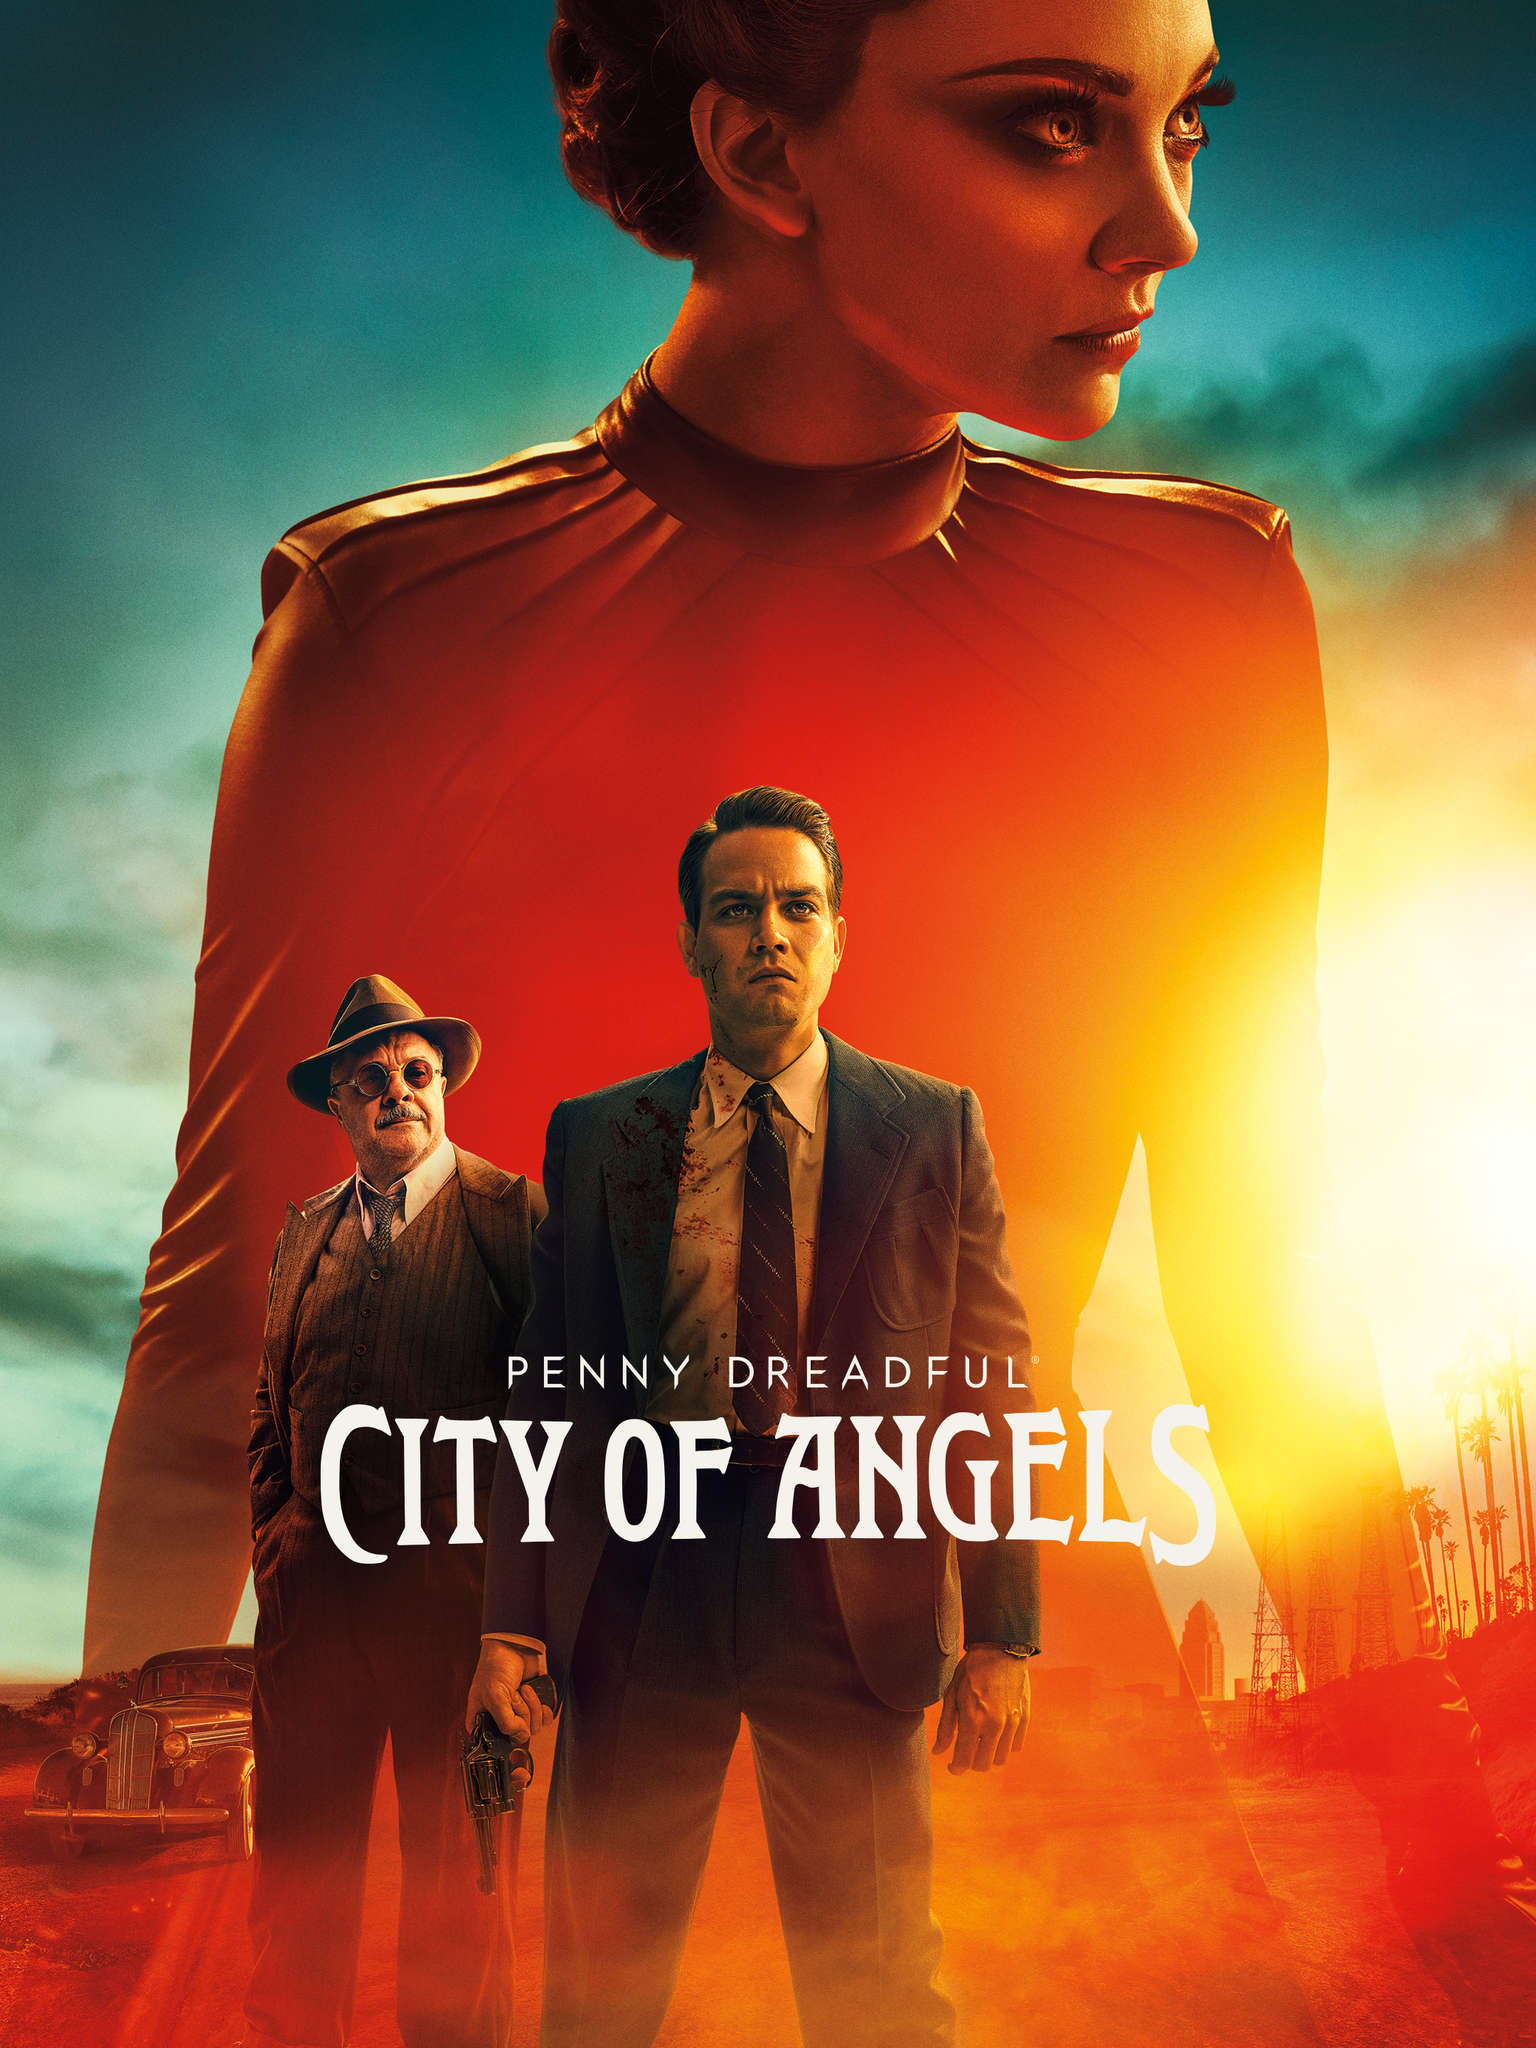 Penny.Dreadful.City.Of.Angels.S01E10.FiNAL.SUBFRENCH.1080p.HDTV.H264-HYBRiS